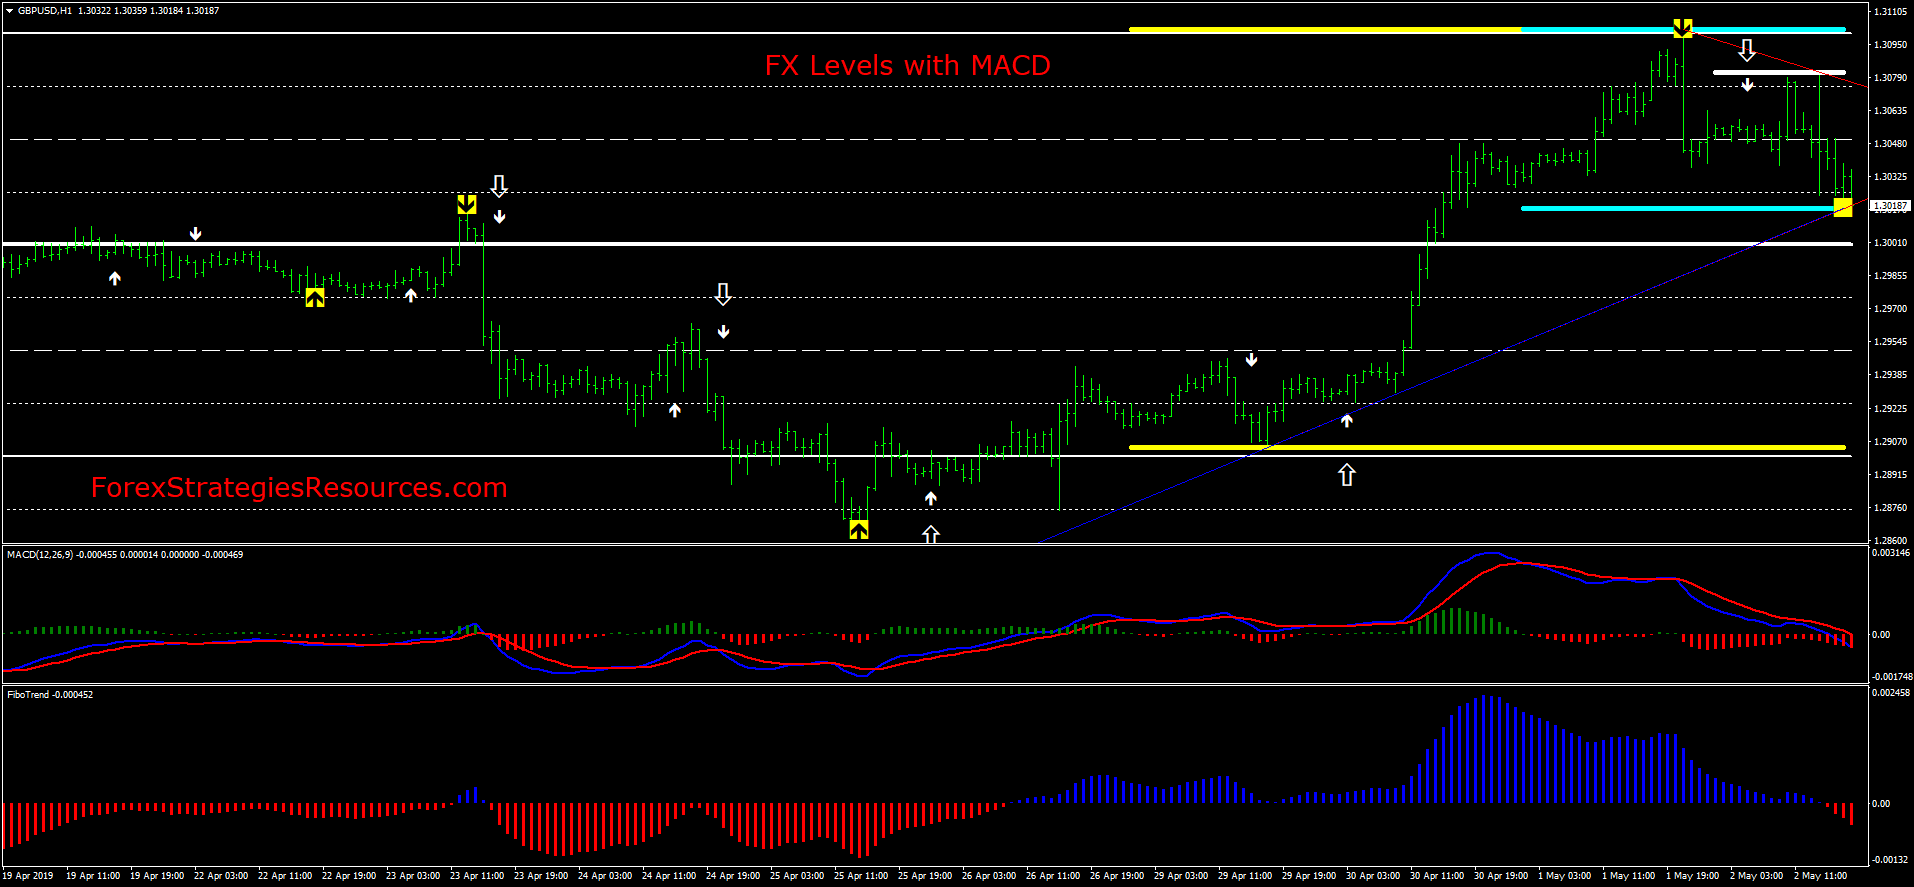 FX Levels with MACD - Forex Strategies - Forex Resources - Forex